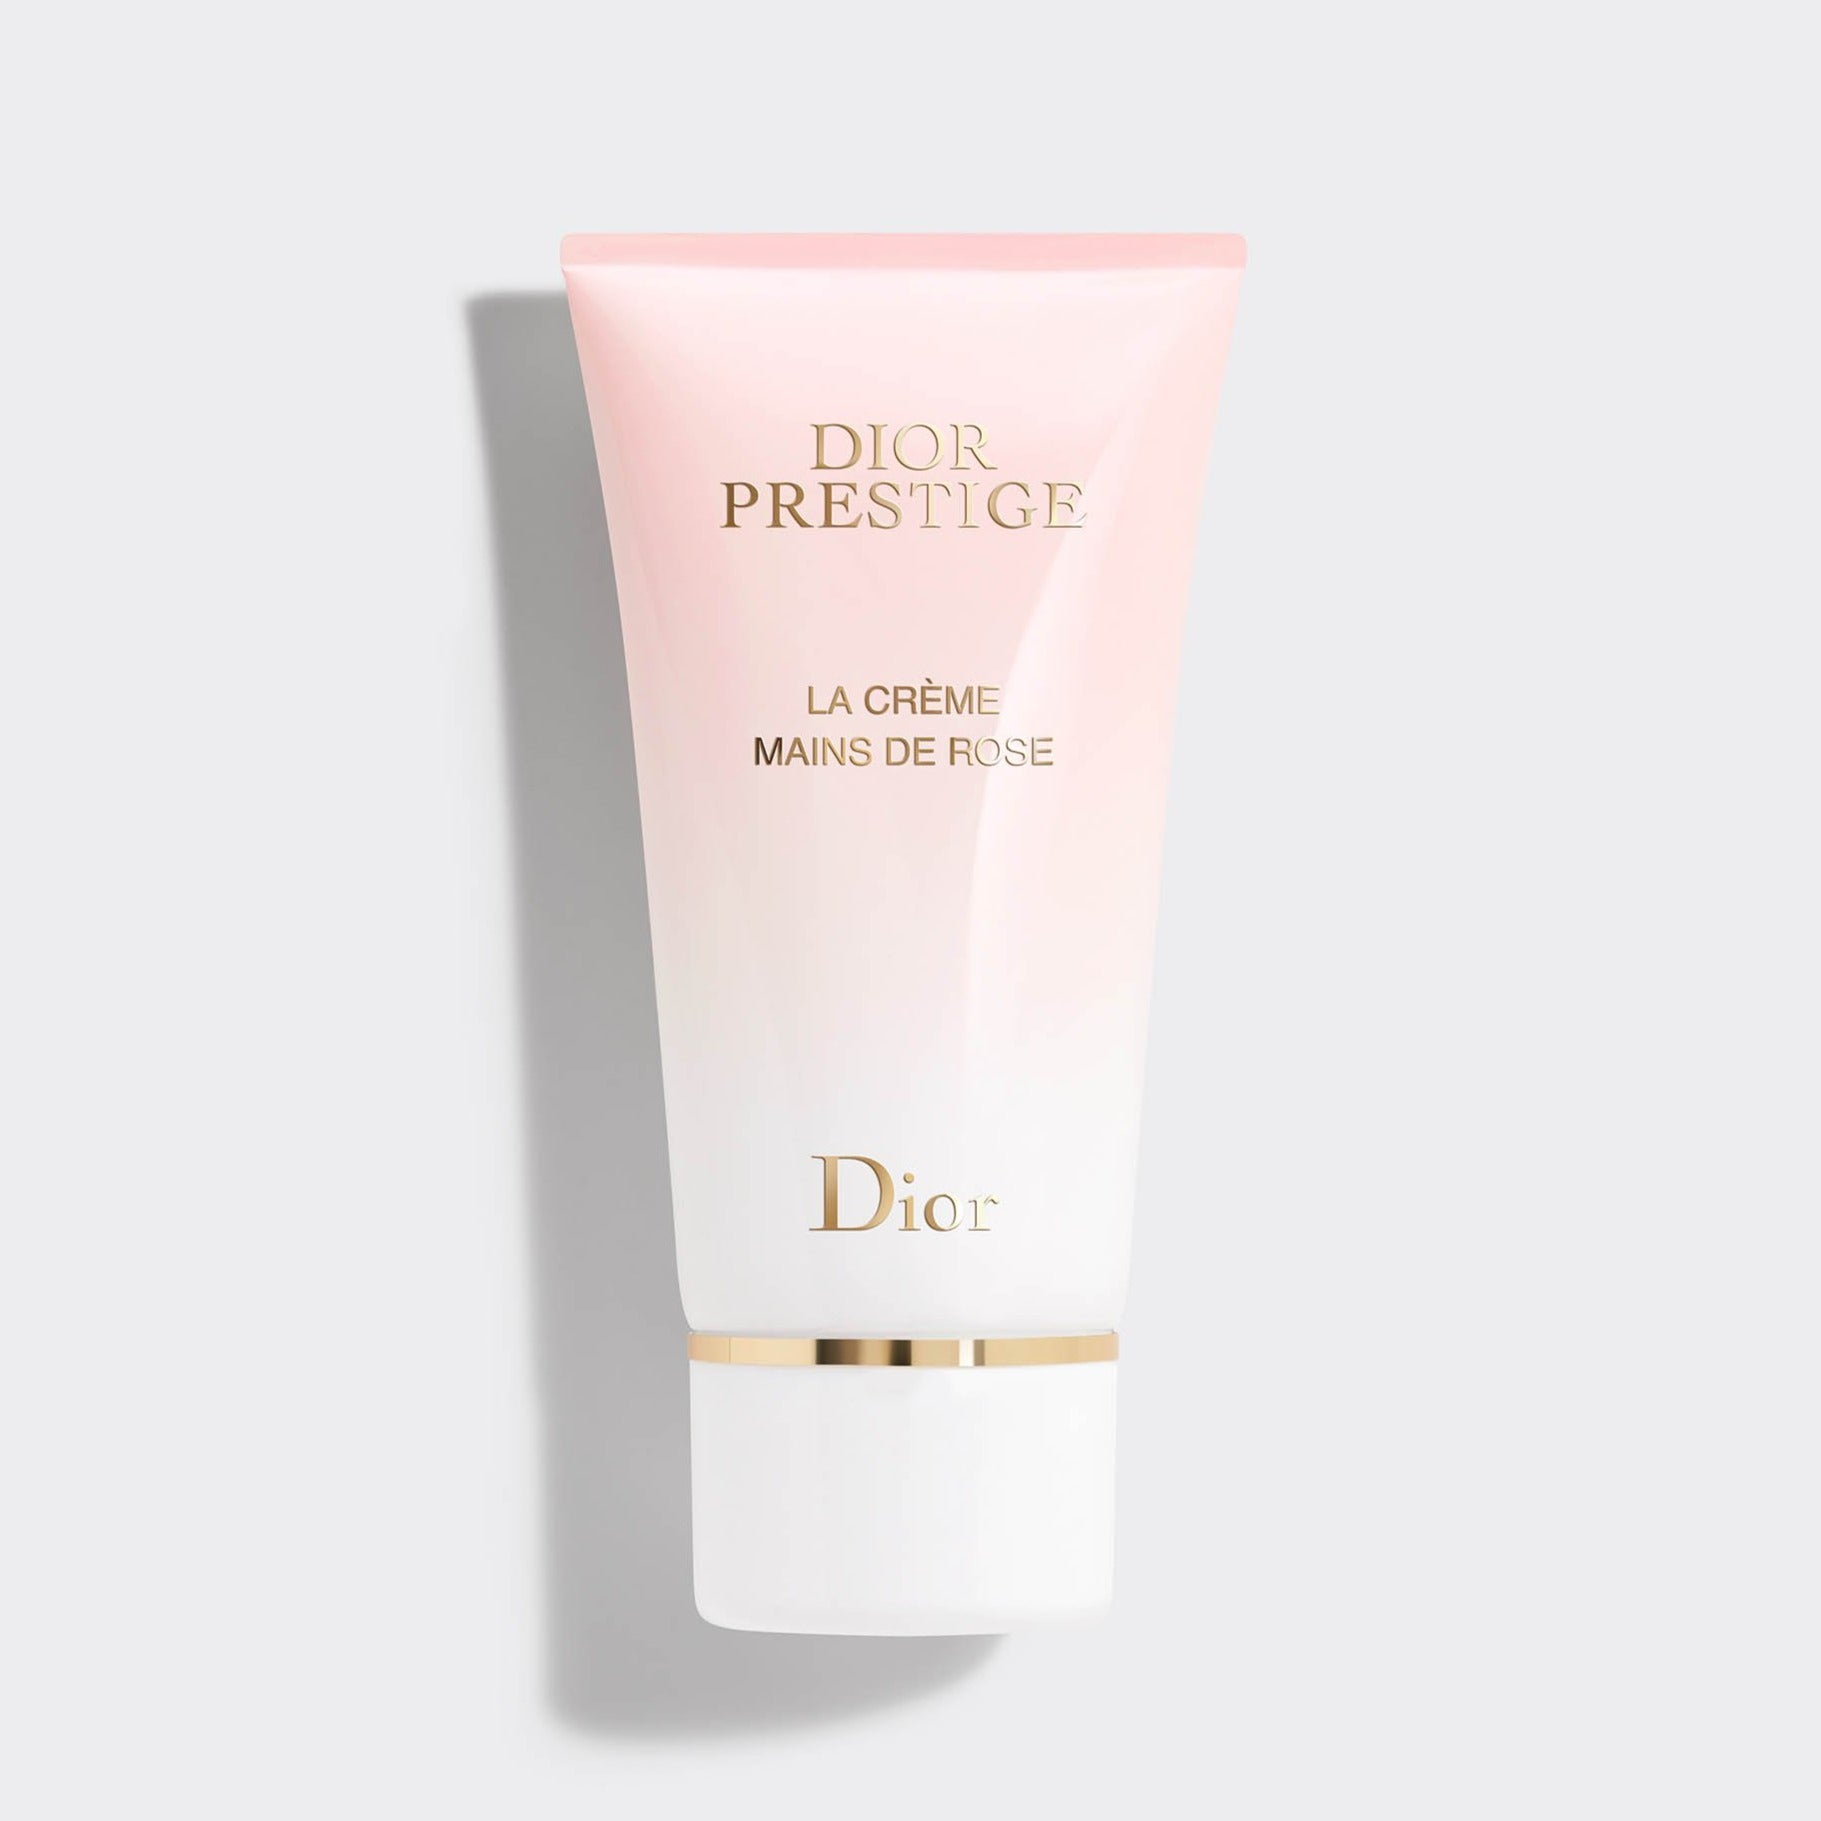 Dior Prestige La Crème Mains de Rose | Hand cream - exceptional micro-nutritive and revitalising care